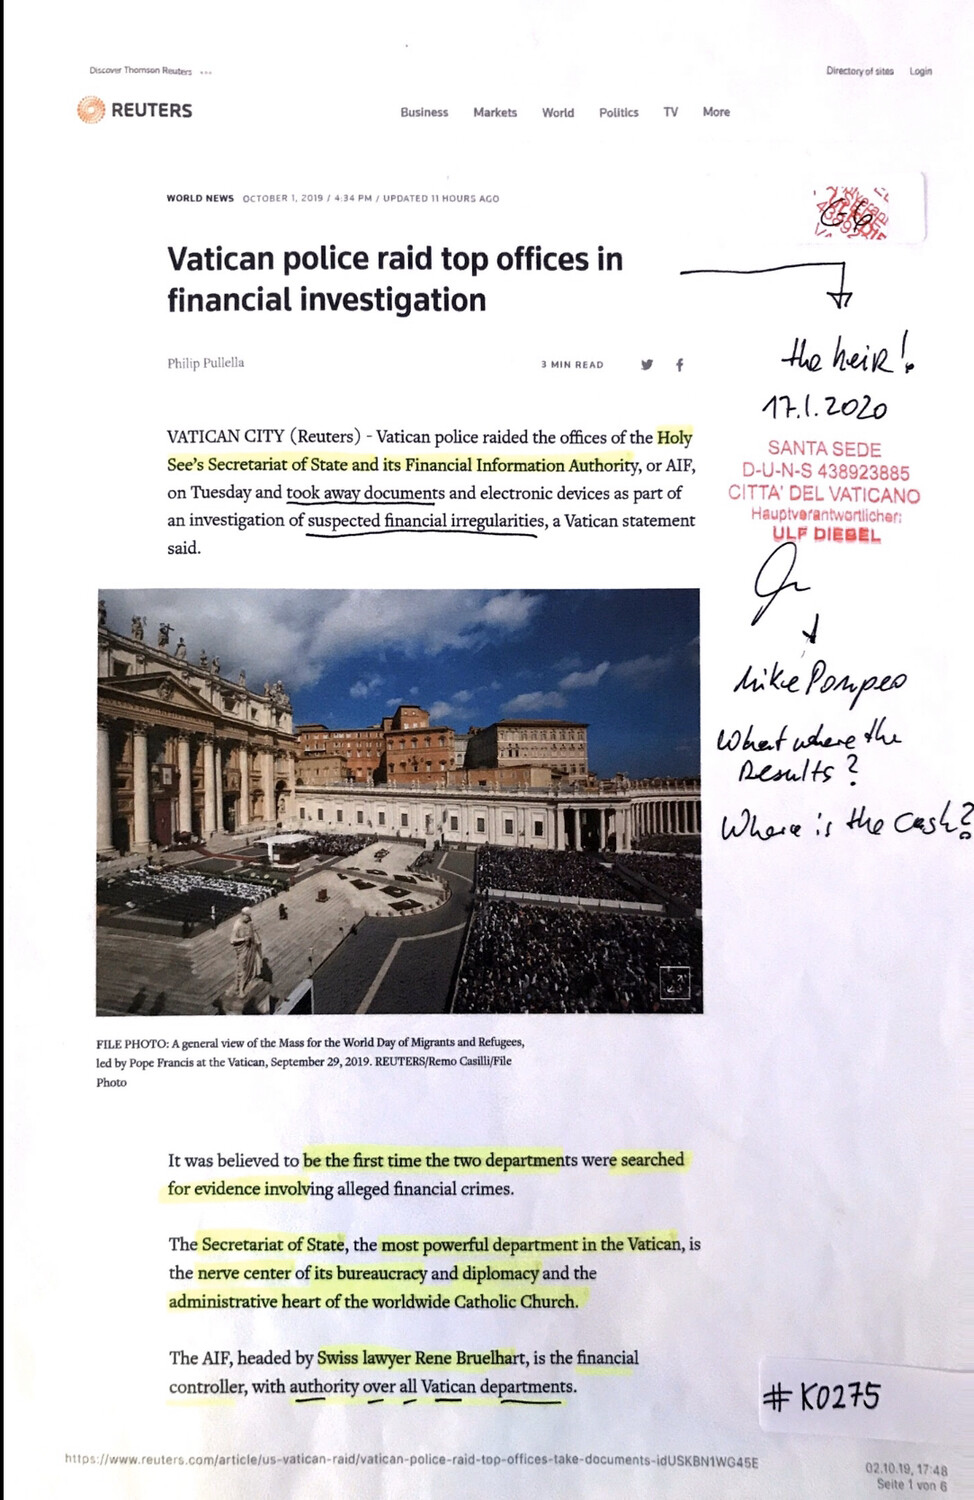 #K0275 l Reuters - Vatican police raid top offices in financial investigation